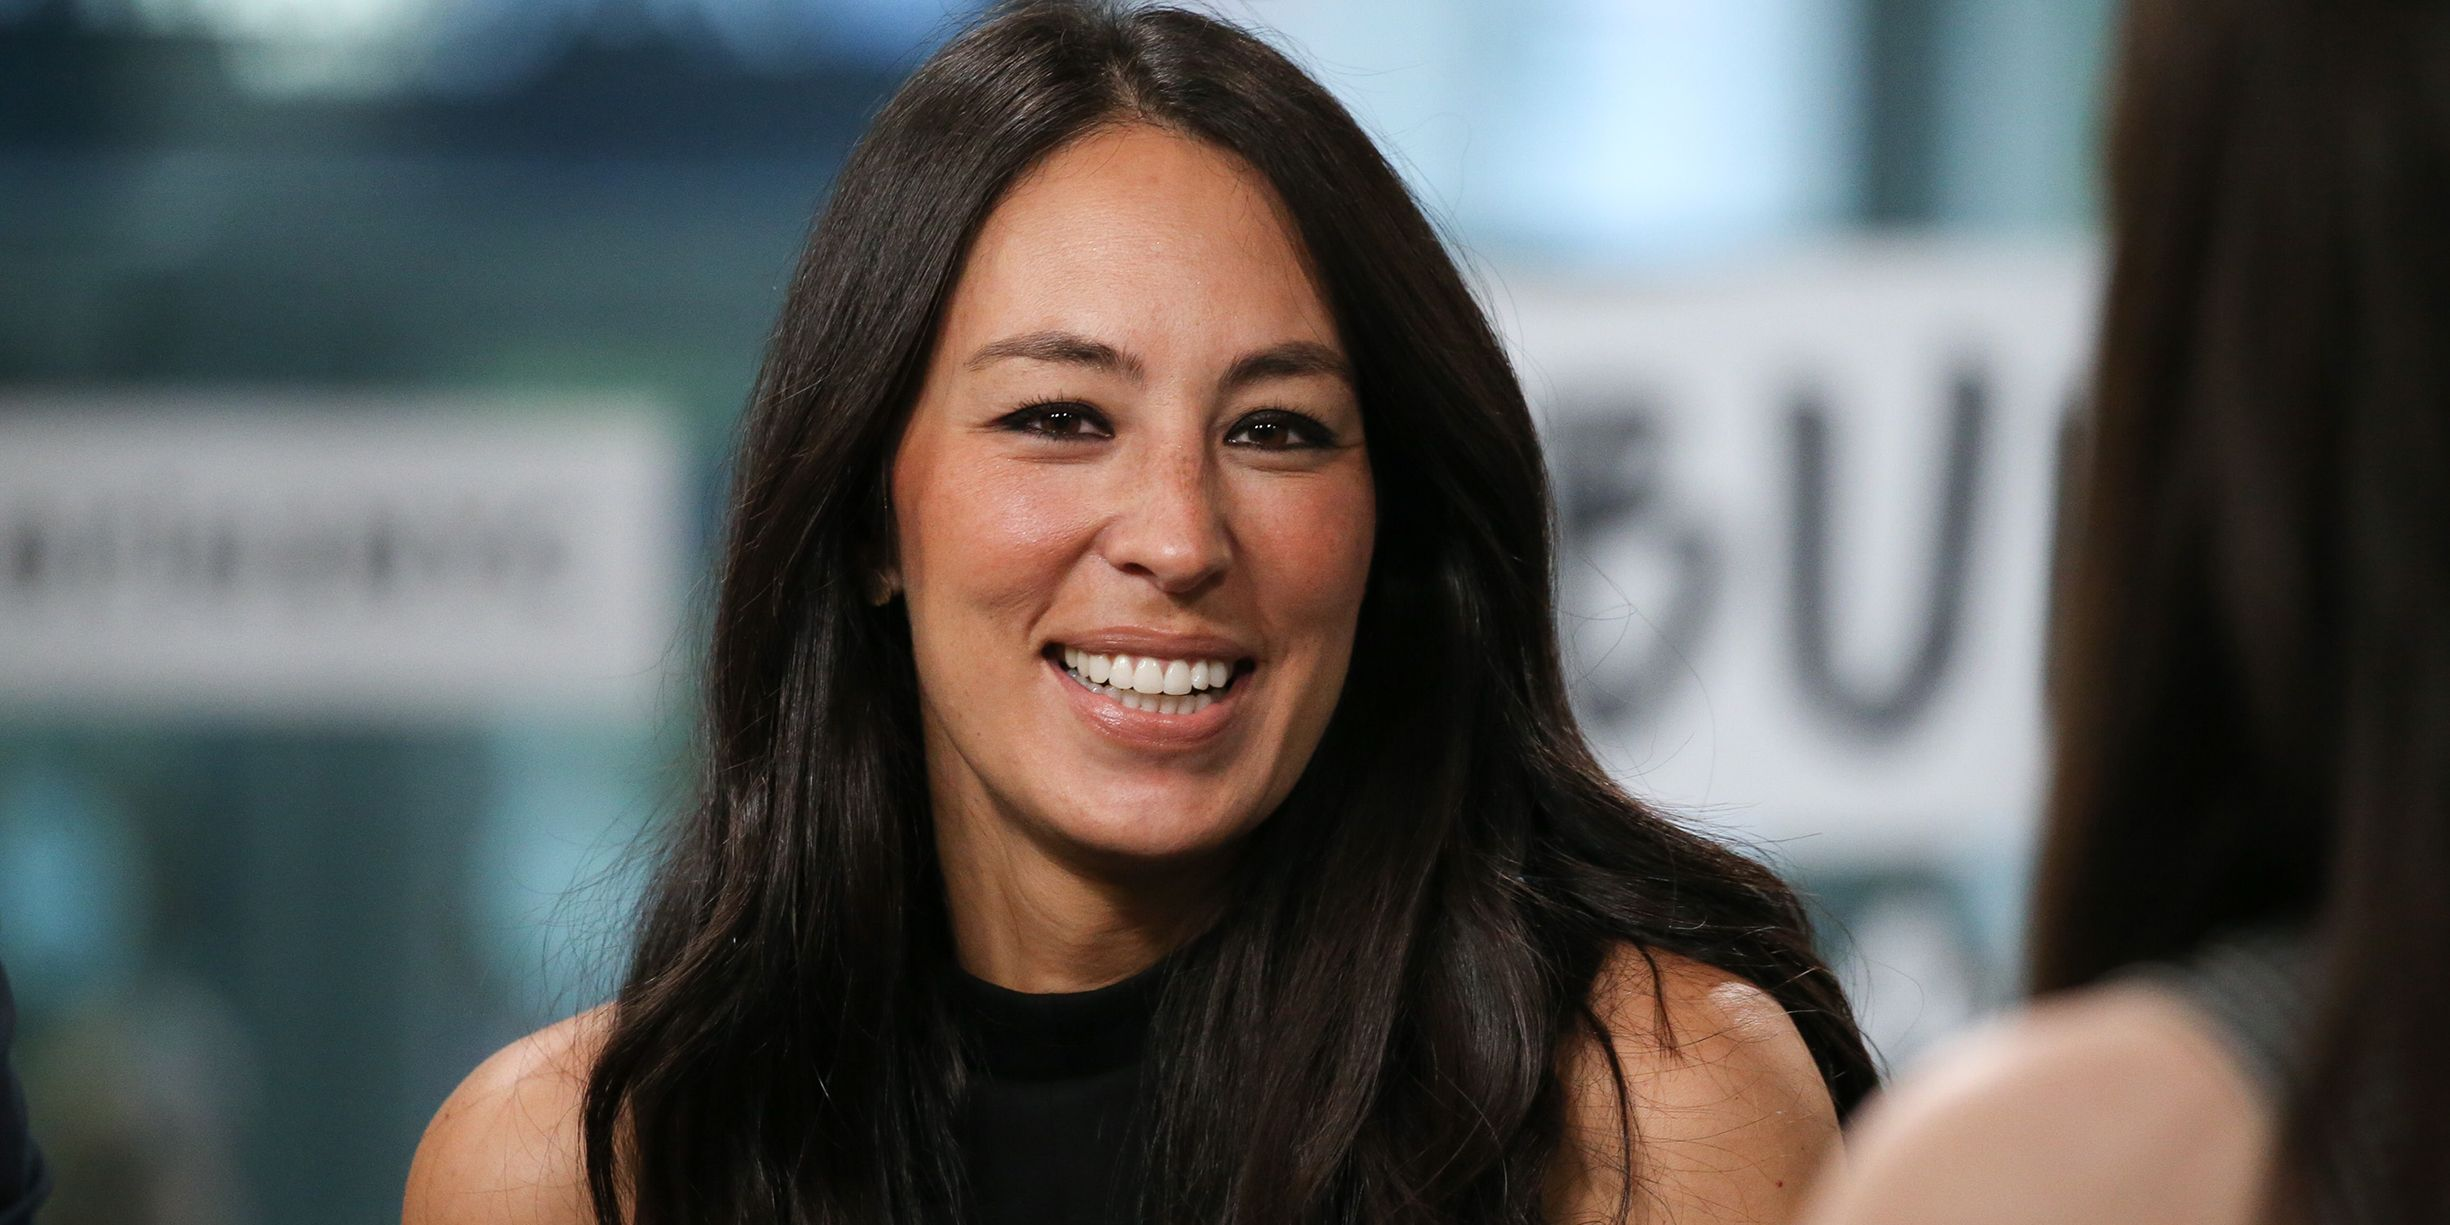 Joanna Gaines Never Leaves the House Without These Two Things in Her Purse